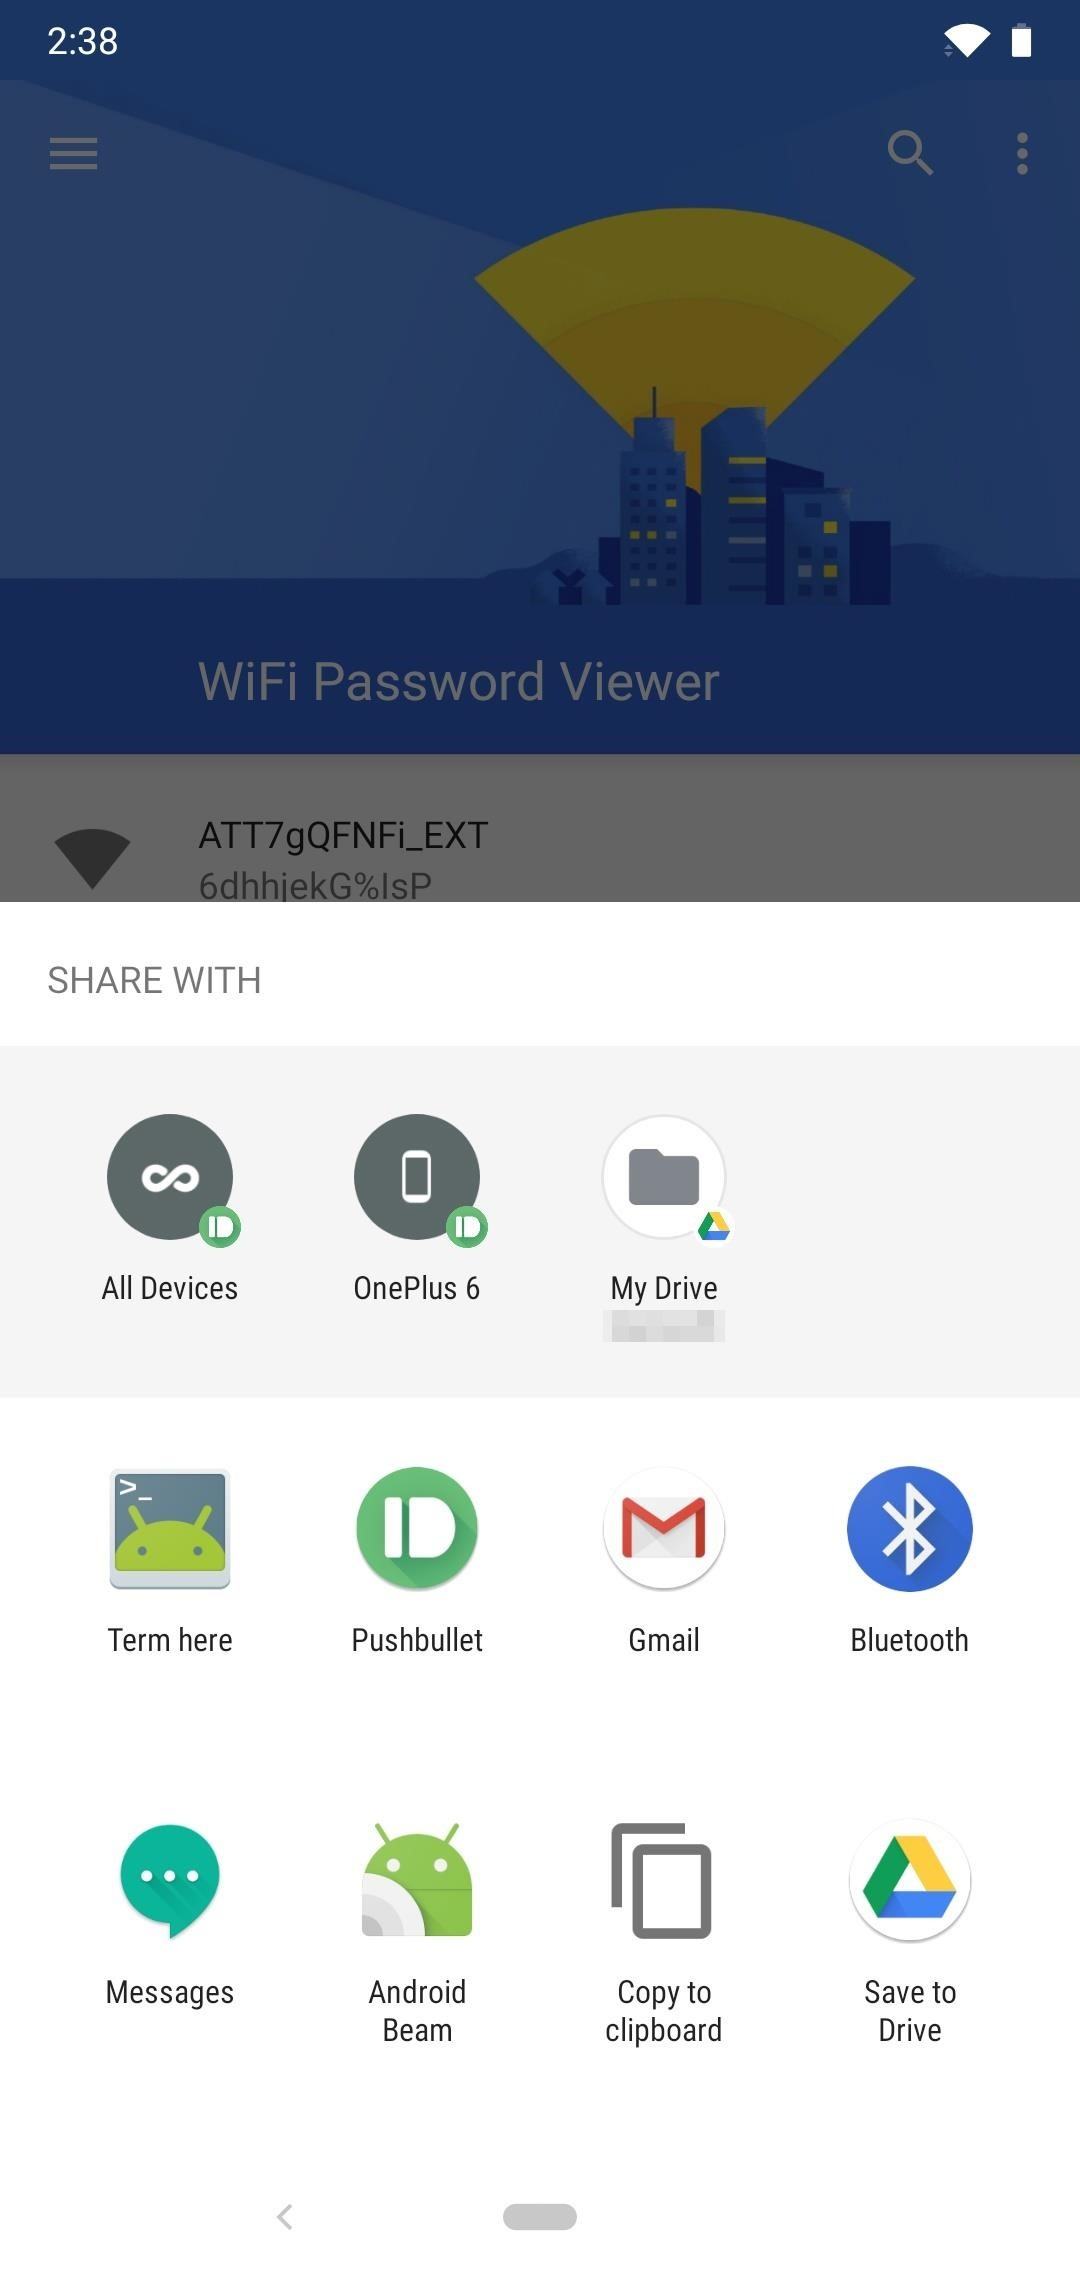 How to See Passwords for Wi-Fi Networks You